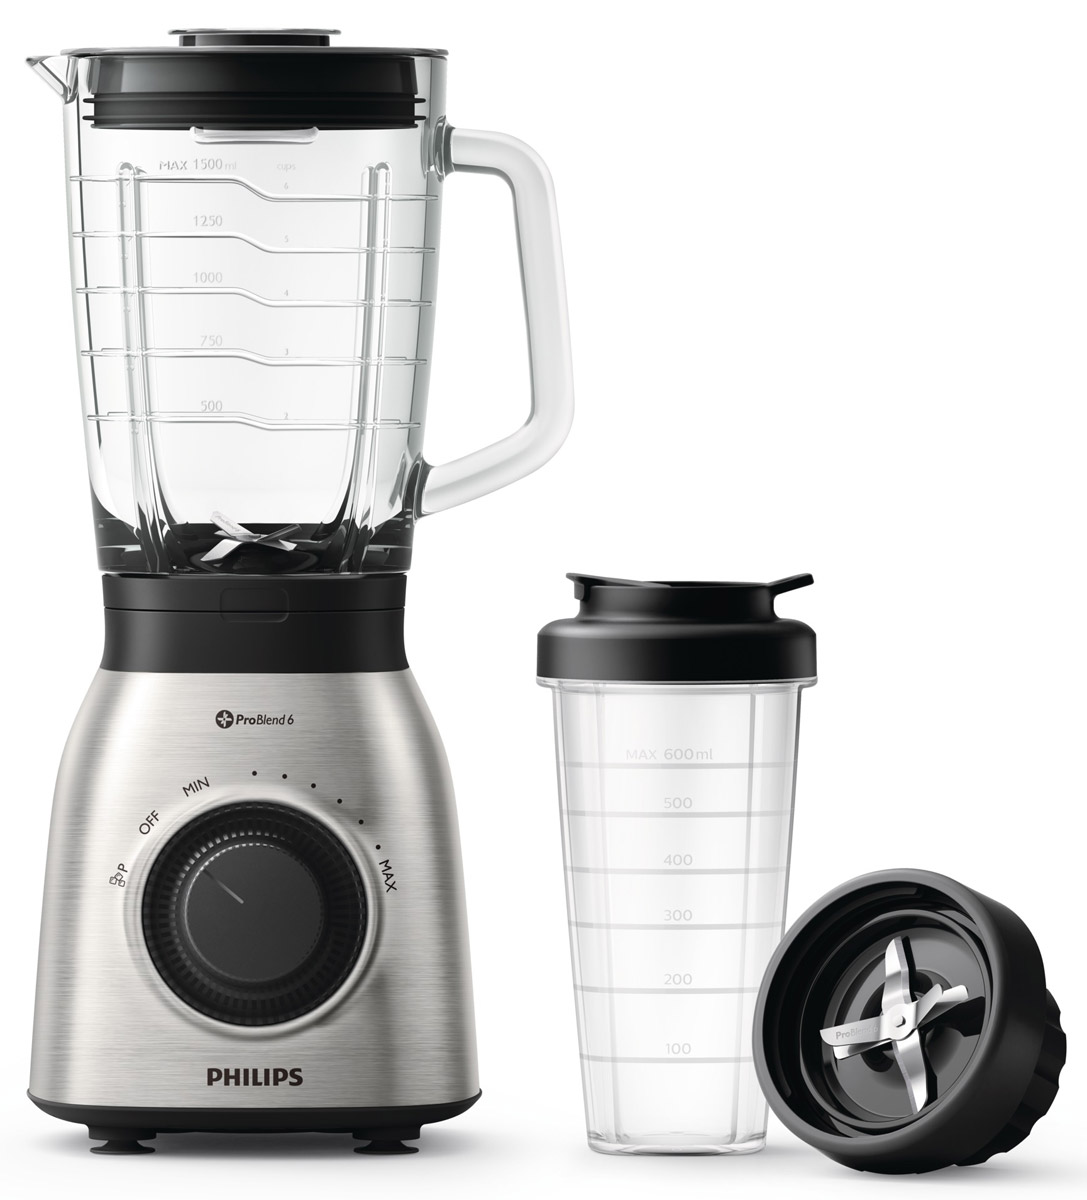 Philips Viva Collection HR3556/00 блендер со стаканом On the Go philips avance collection hr 1919 70